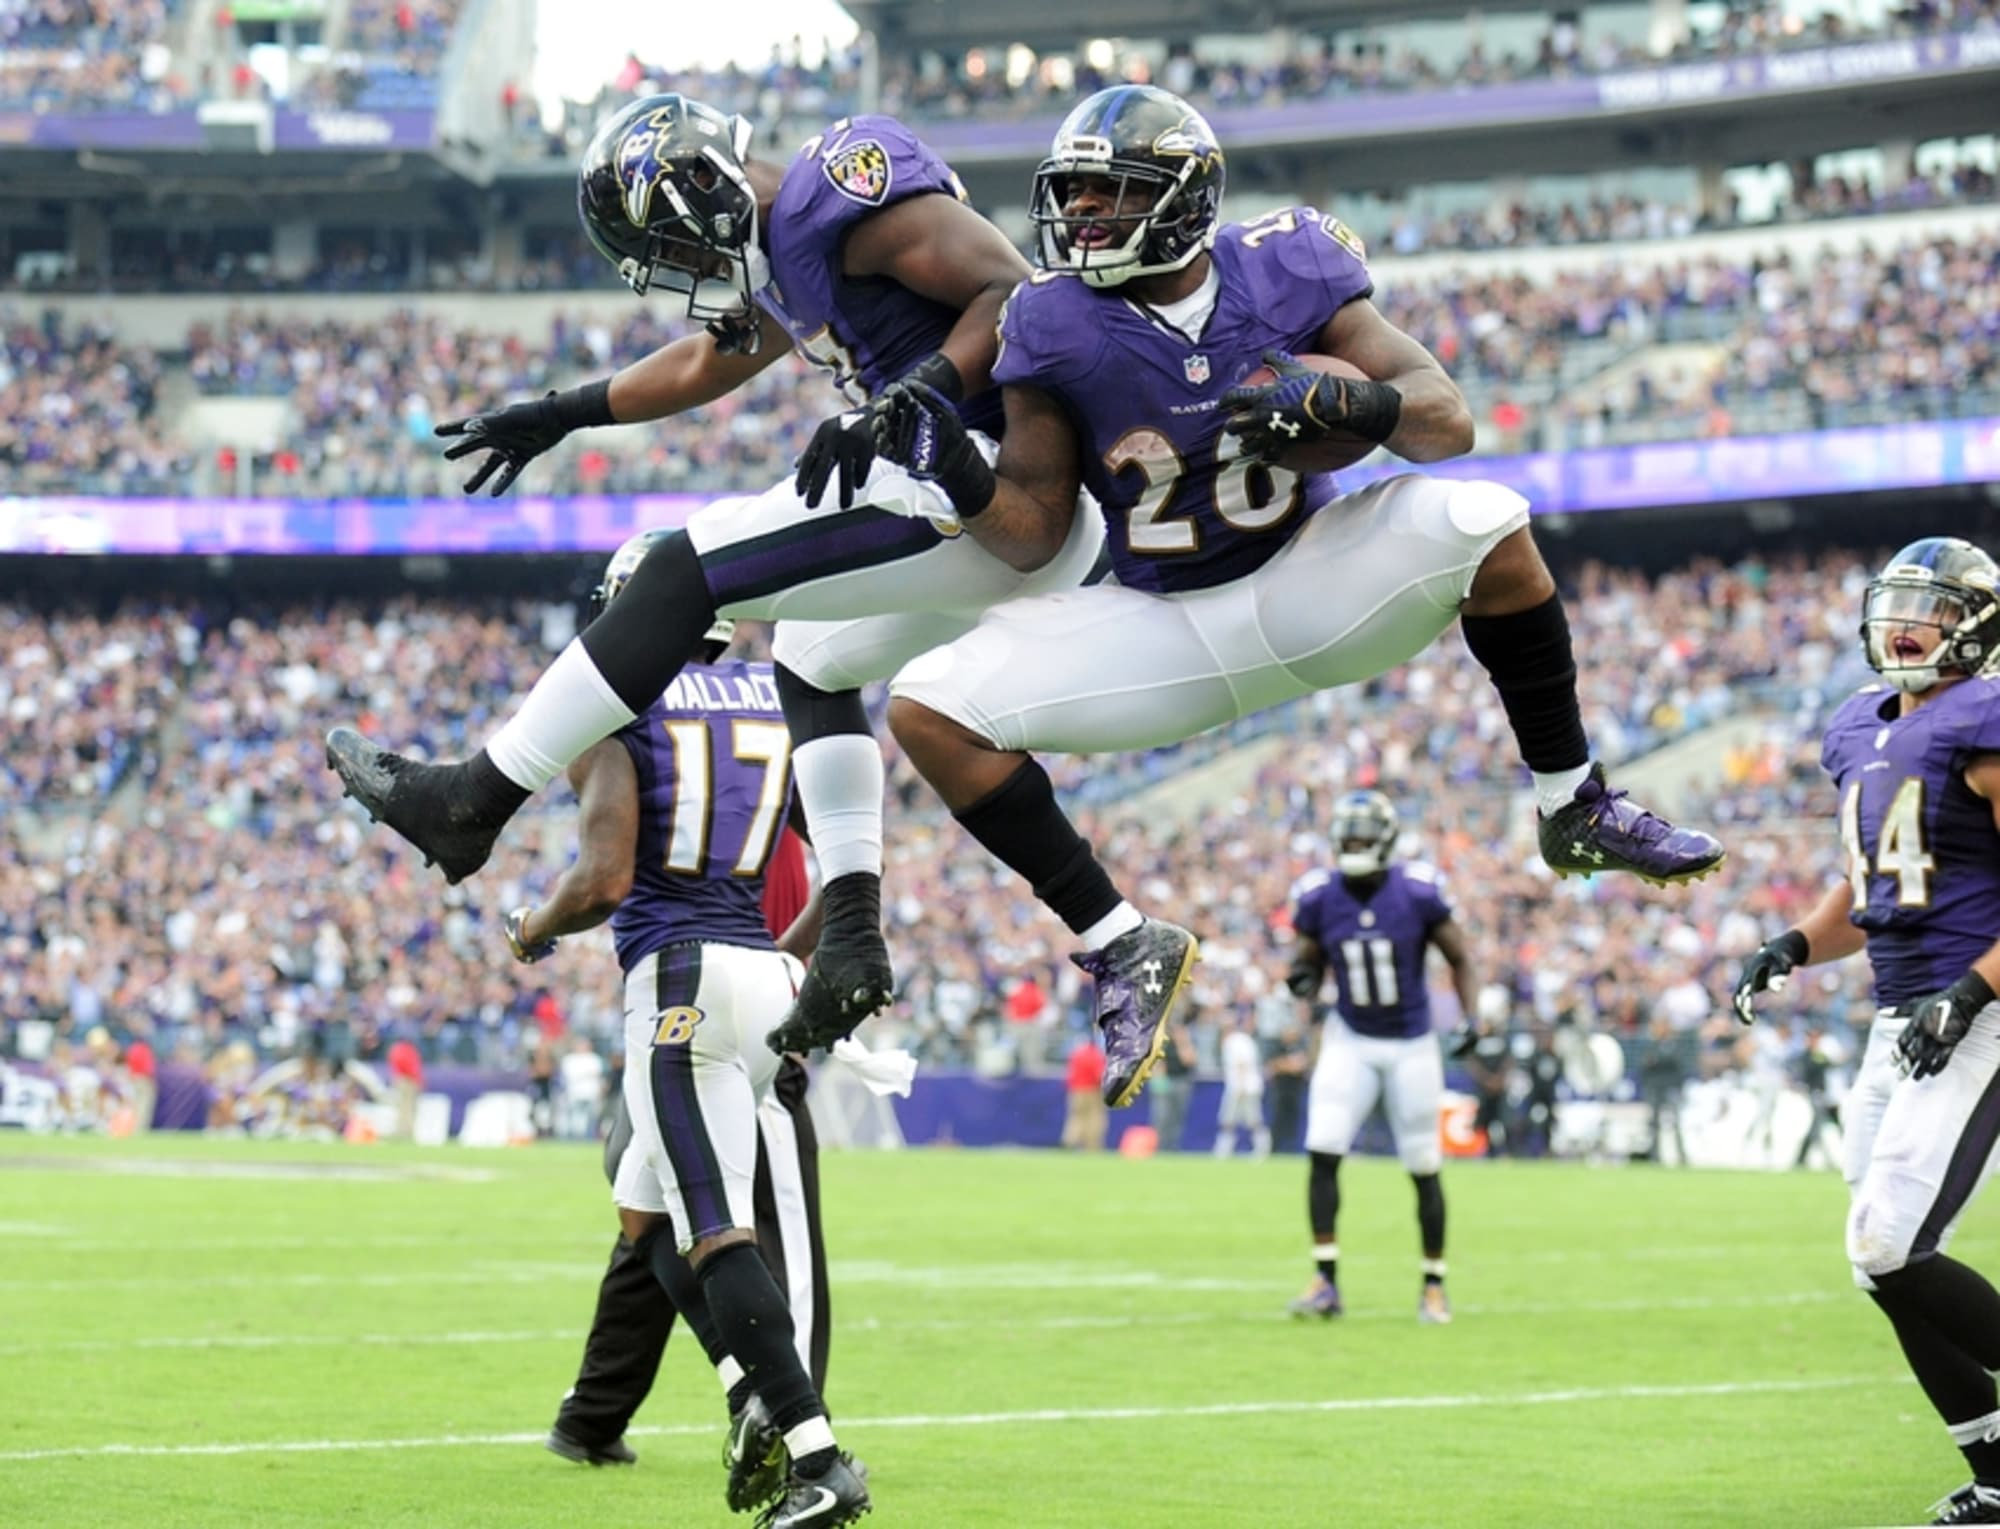 Terrance West Will Be The Next Superstar In The NFL